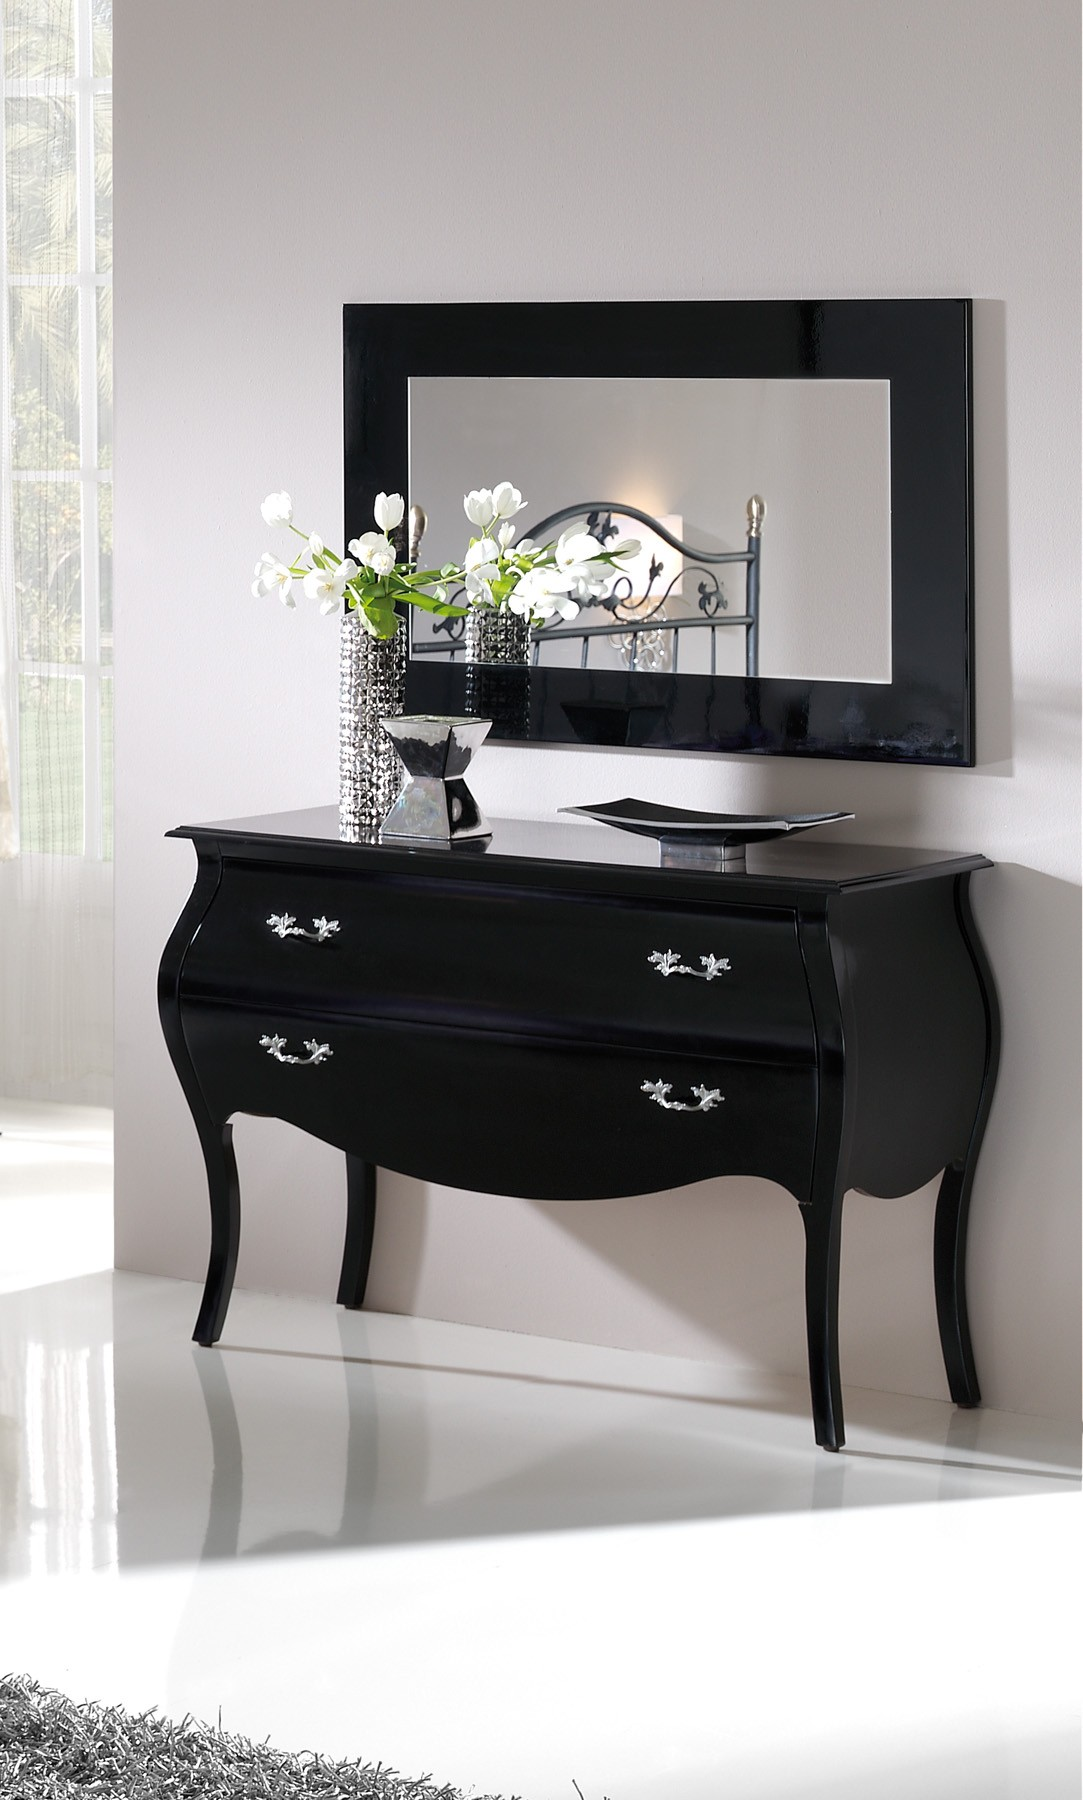 grand miroir baroque pas cher maison design. Black Bedroom Furniture Sets. Home Design Ideas